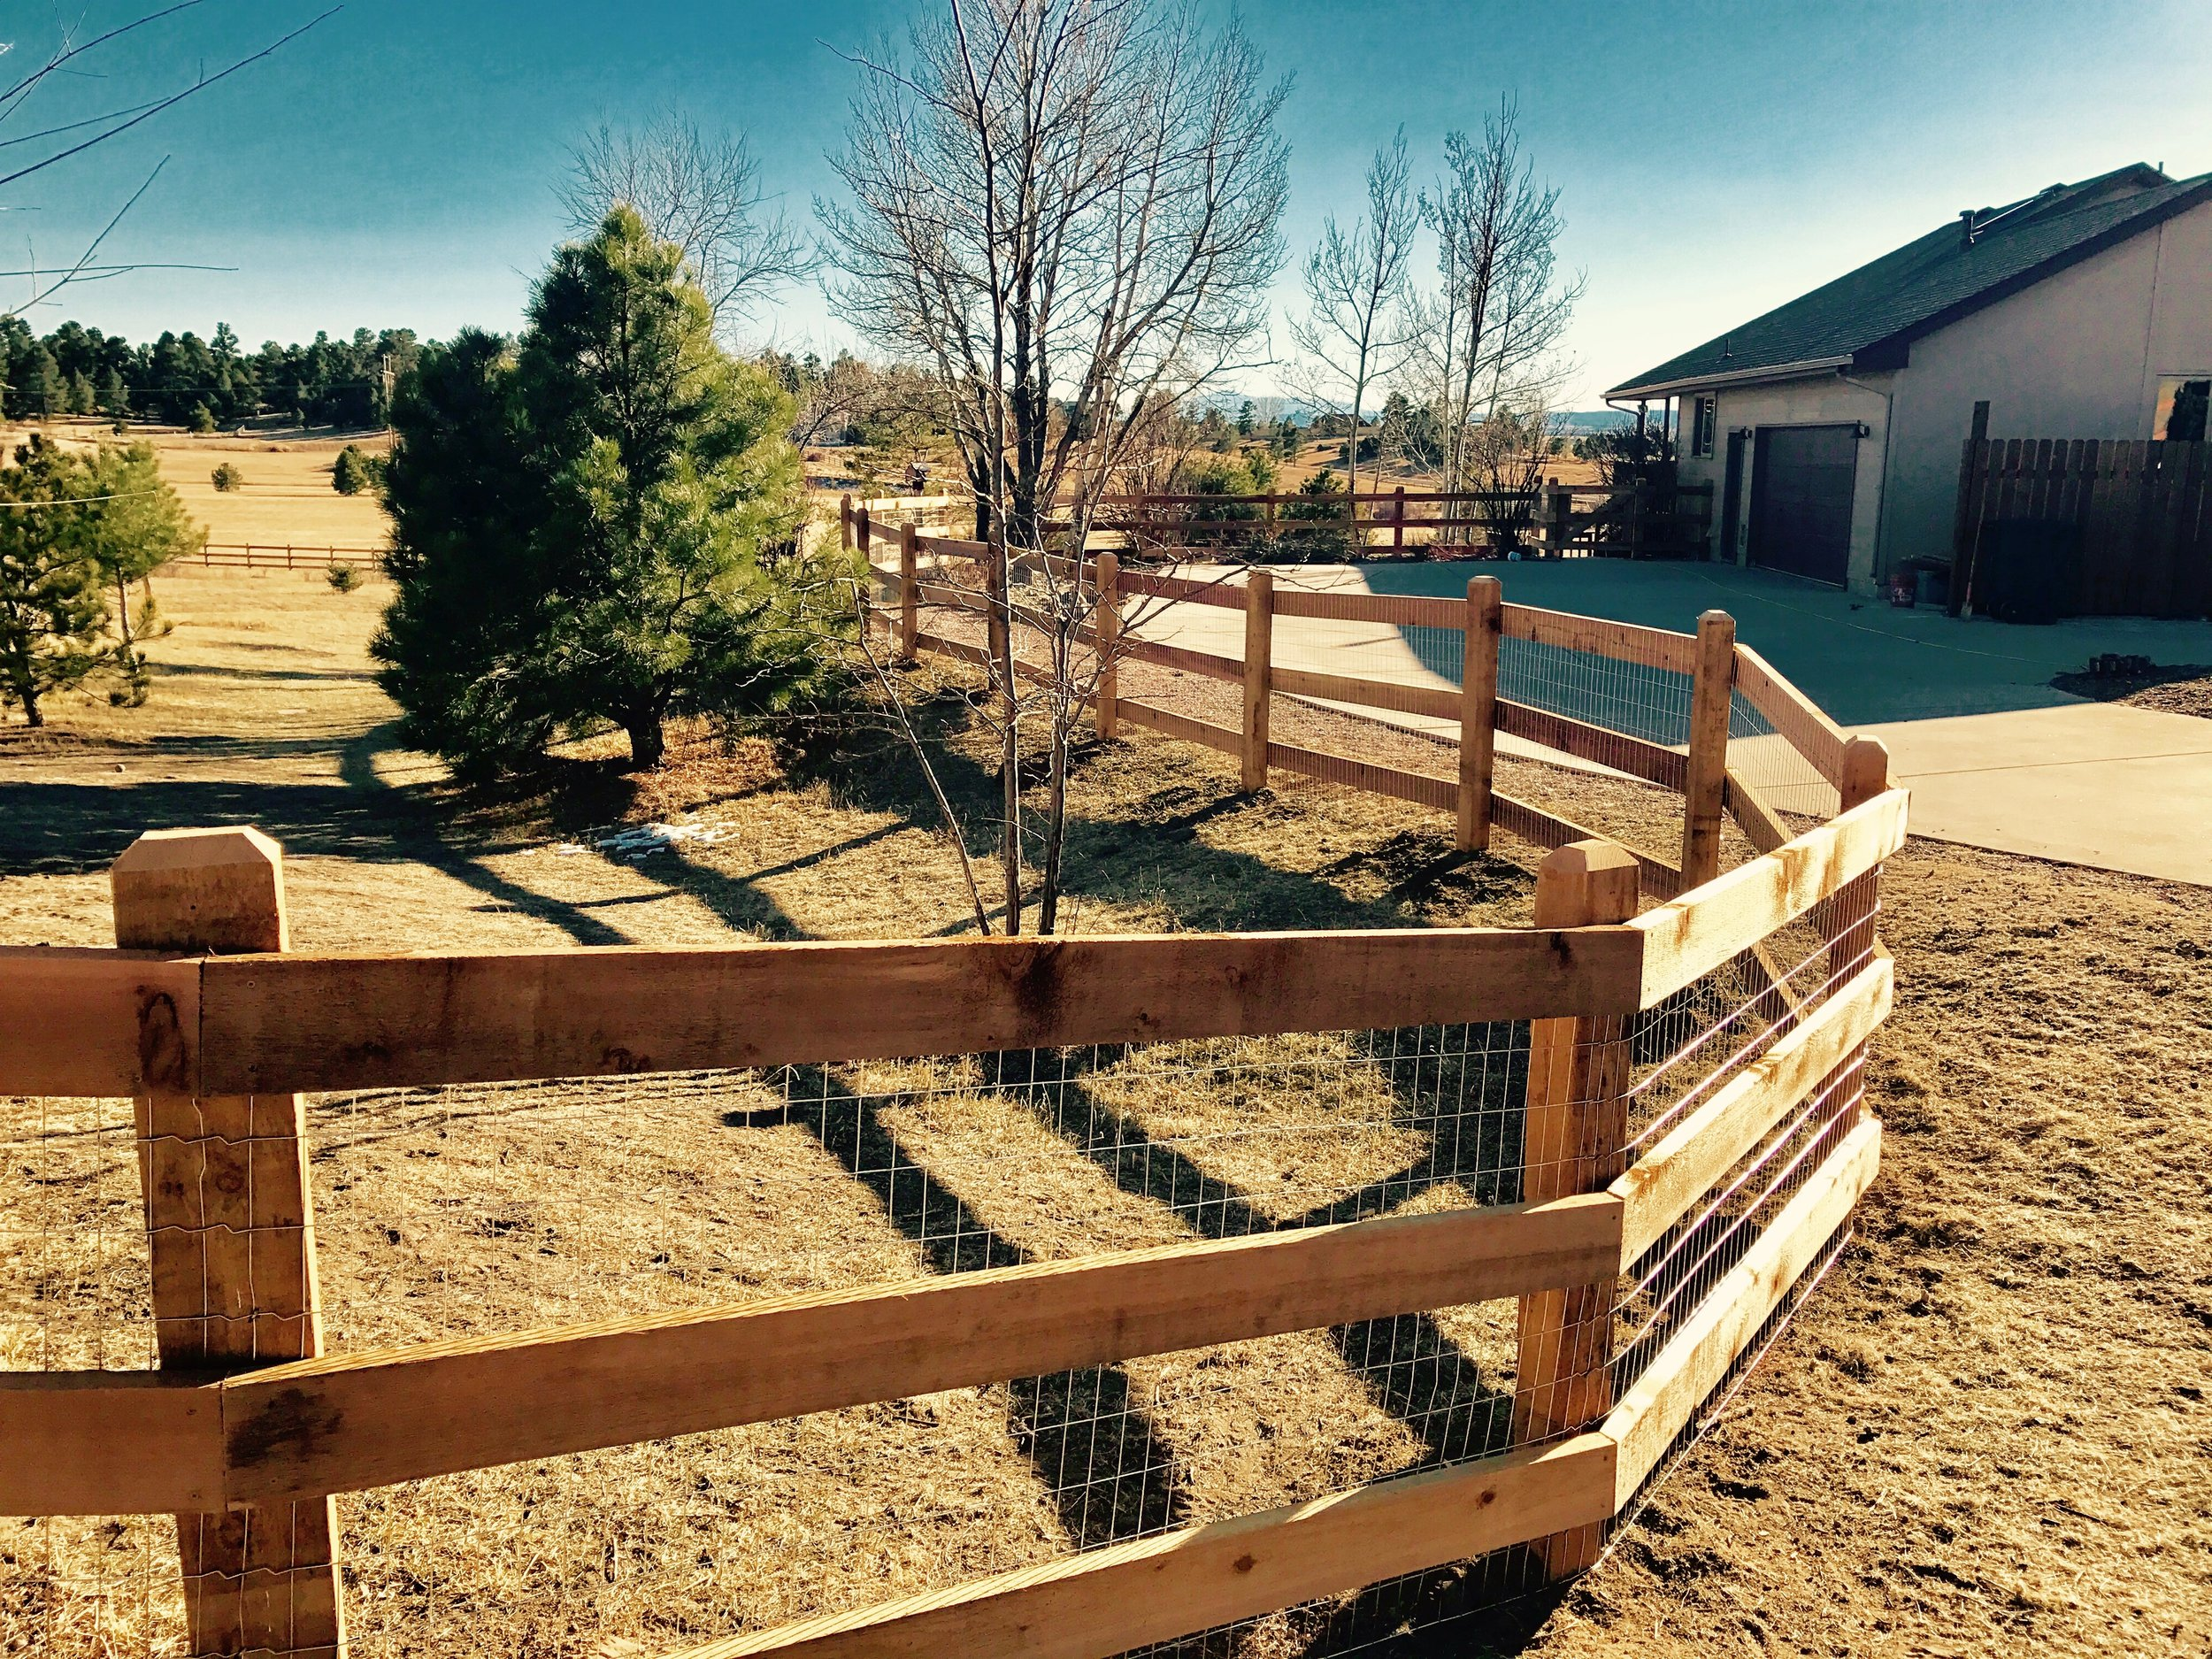 Ranch Rail Fence - Price🌲🌲Durability🌲🌲🌲Maintanence Costs🌲🌲Longevity🌲🌲🌲